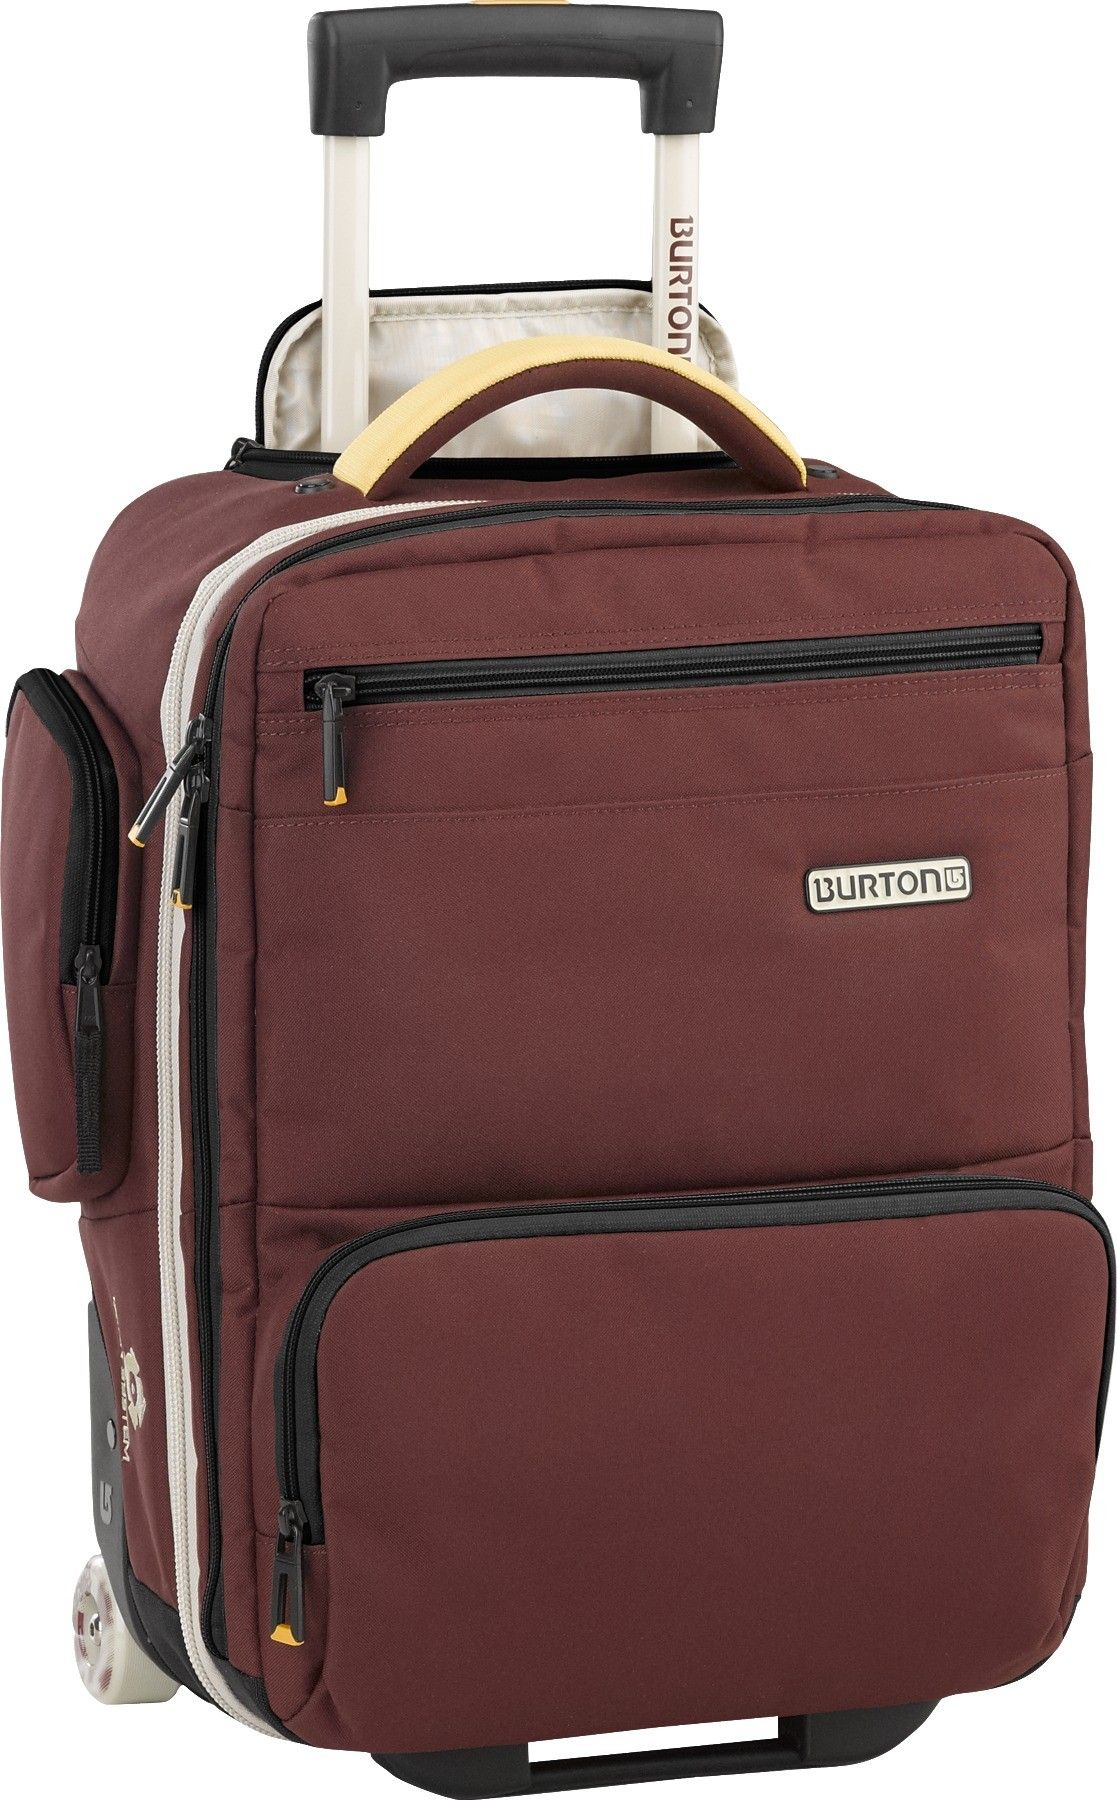 Burton Wheelie Flyer Travel Bag Crimson - http://www.downtown.nl/burton-wheelie-flight-deck-falcon-mocha-block-31699